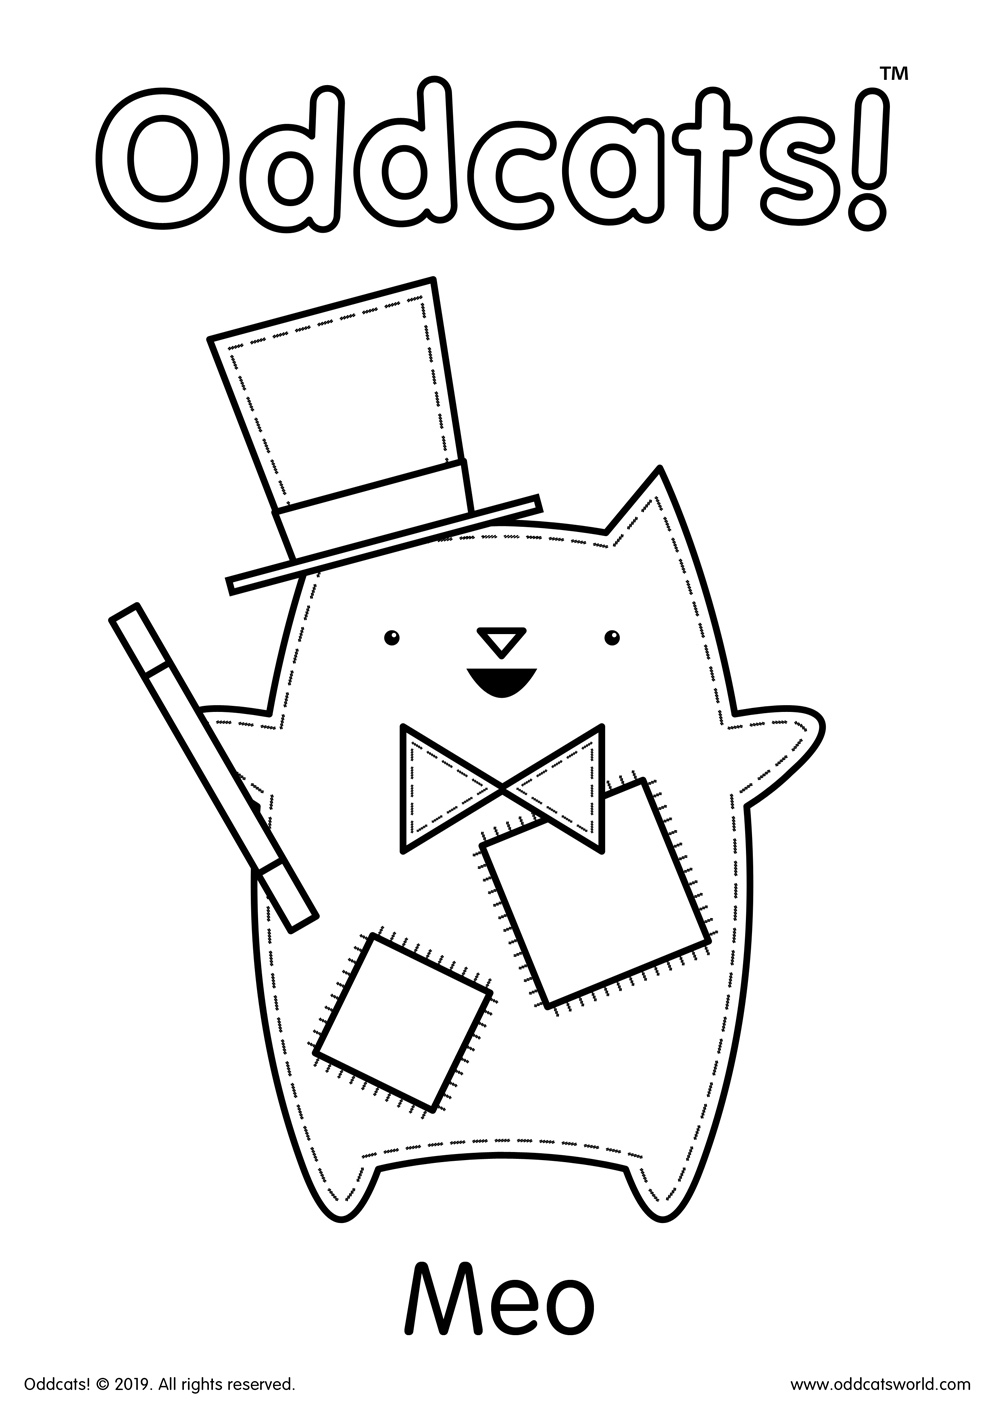 oddcats_colouring_meo_thumb2.jpg